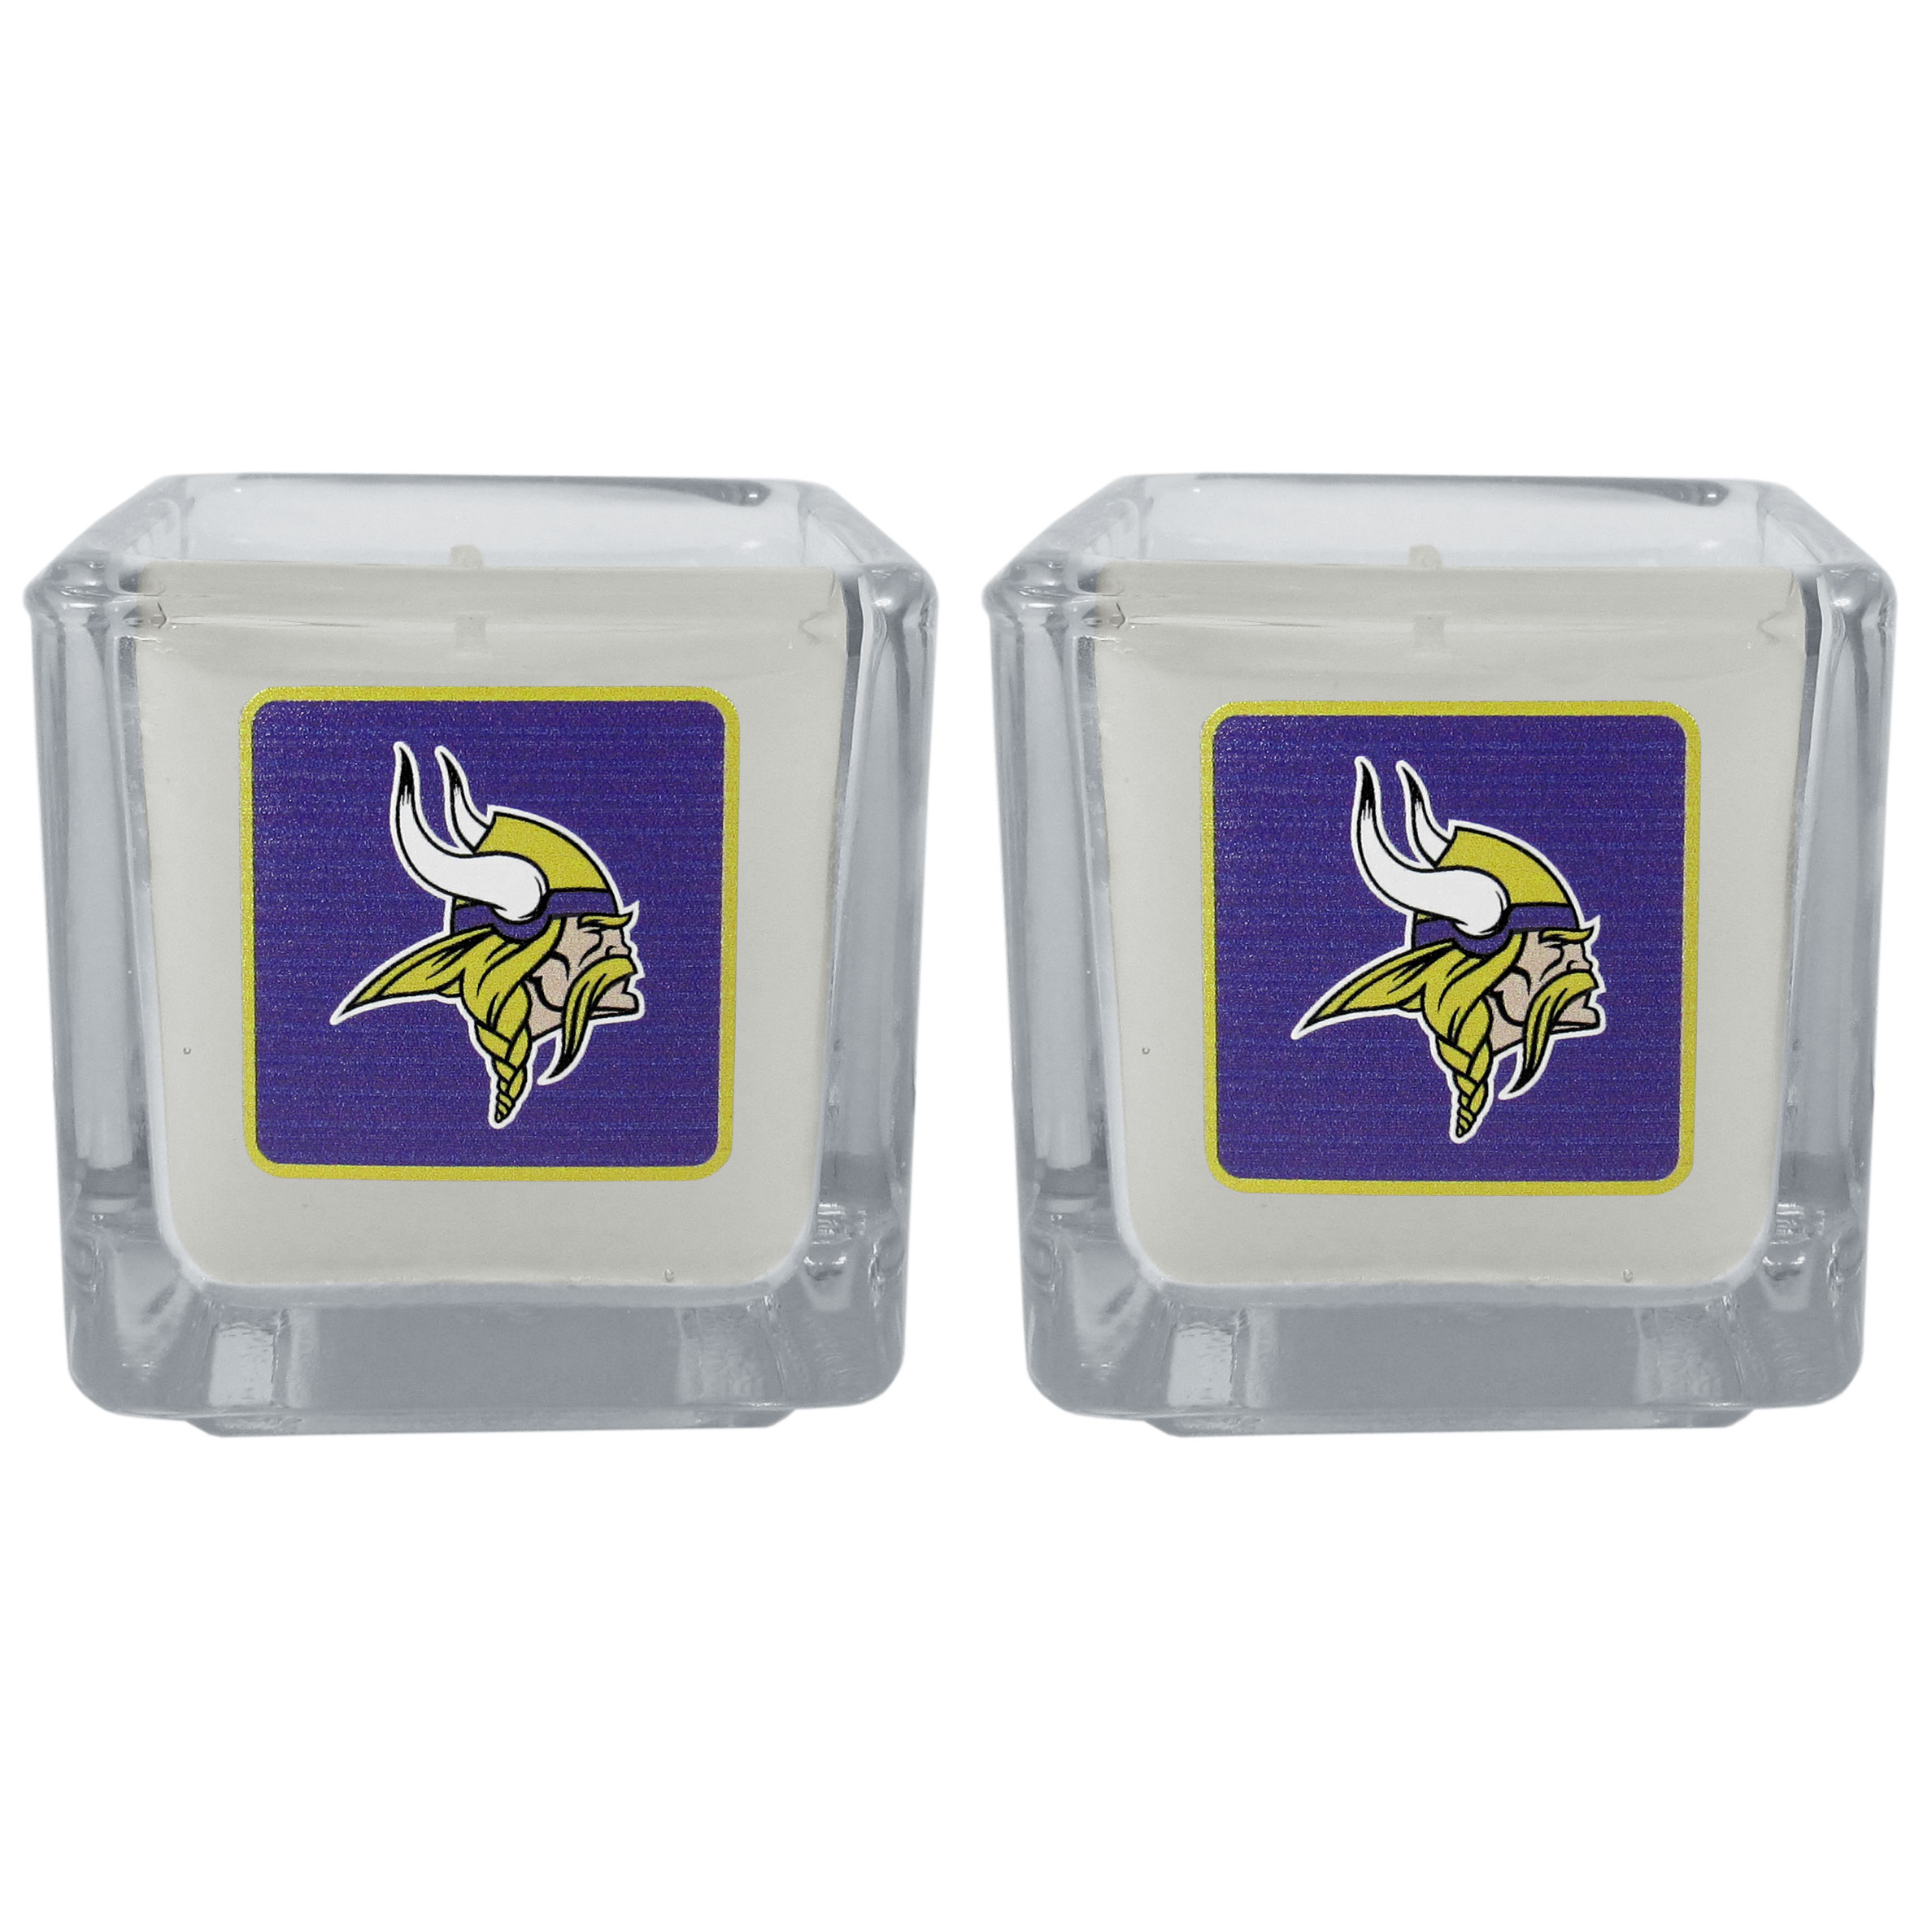 Minnesota Vikings Graphics Candle Set - Our candle set features 2 lightly vanilla scented candles with the Minnesota Vikings logo expertly printed on front. The candles are 2 inches tall in the votive style.